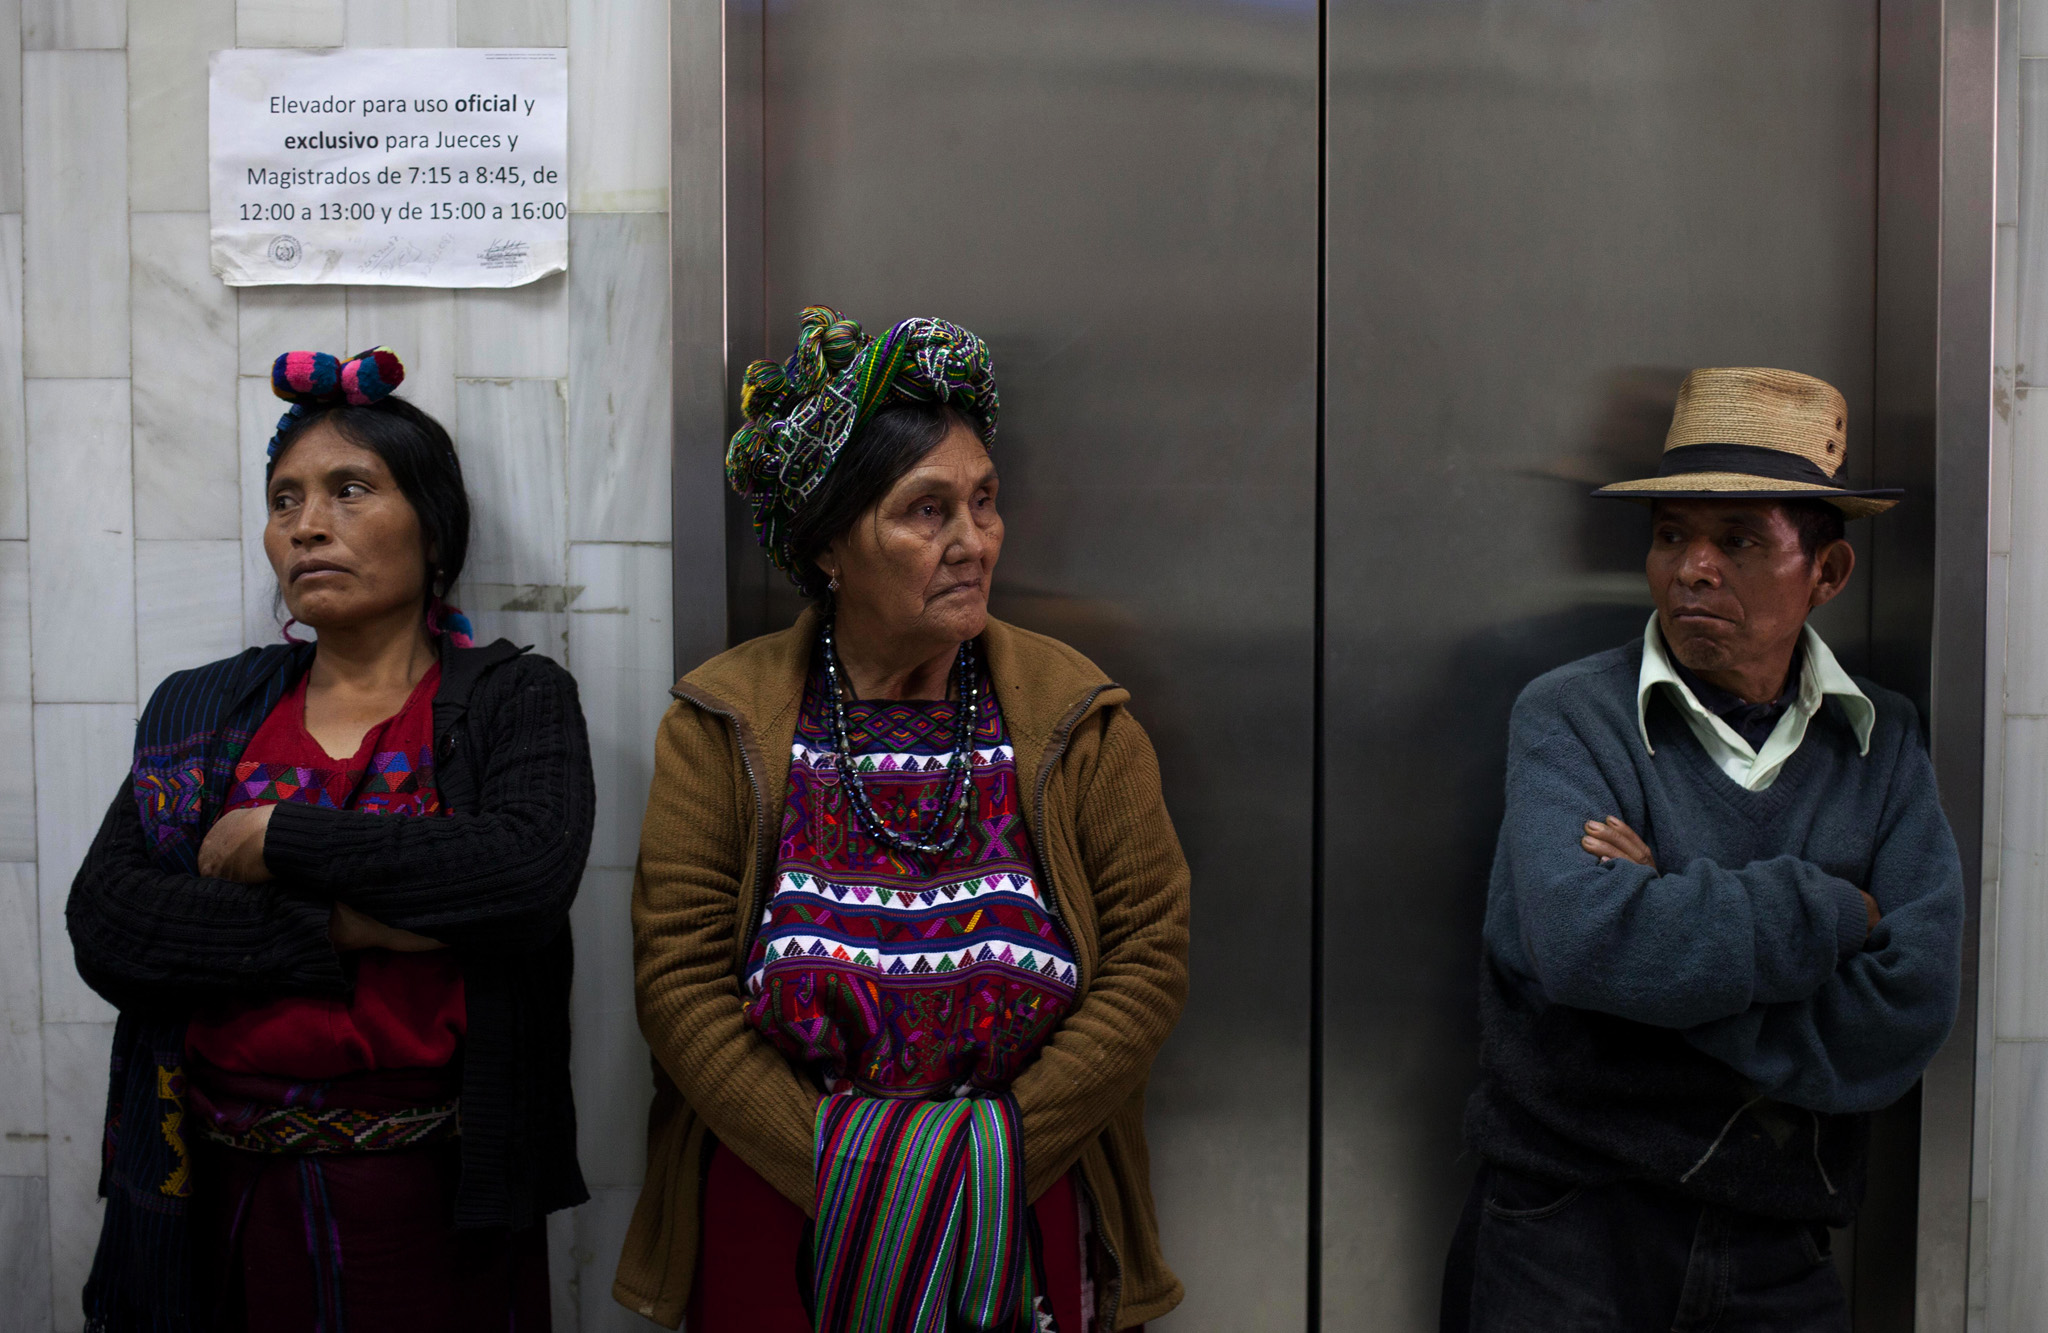 Ixil Indians wait outside the courtroom in Guatemala City where Guatemala's former dictator Efrain Rios Montt is facing charges of genocide and crimes against. Rios Montt was convicted for the massacre of thousands during his 1982-83 regime in what was considered a historic 2013 ruling. But his 80-year sentence was later overturned and a restart to the trial ordered.